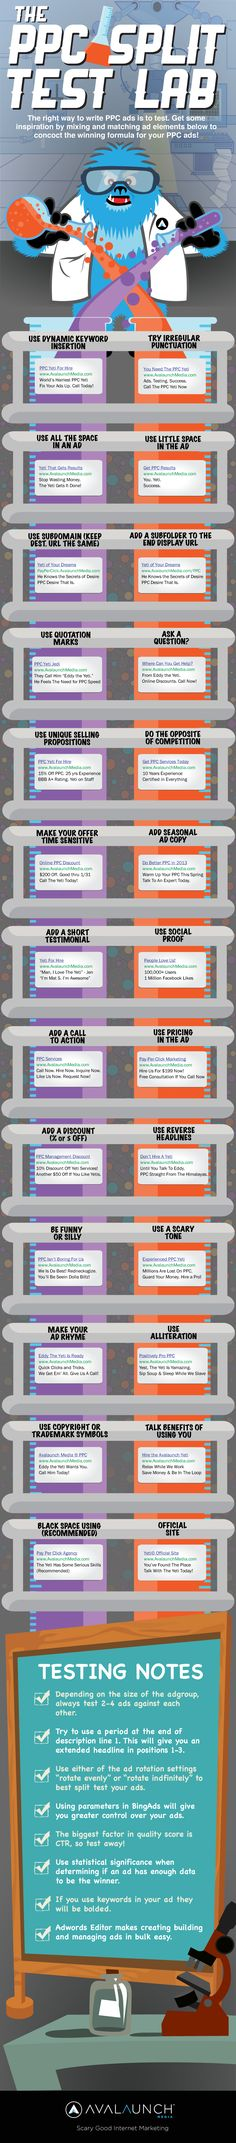 Feeling like you're out of ideas of what to test for your next #ppc campaign? The folks at Avalaunch Media have created an infographic designed to get you inspired. From asking questions to being funny, here are 26 ideas to consider. http://searchengineland.com/infographic-26-ideas-for-split-testing-your-search-ads-155821